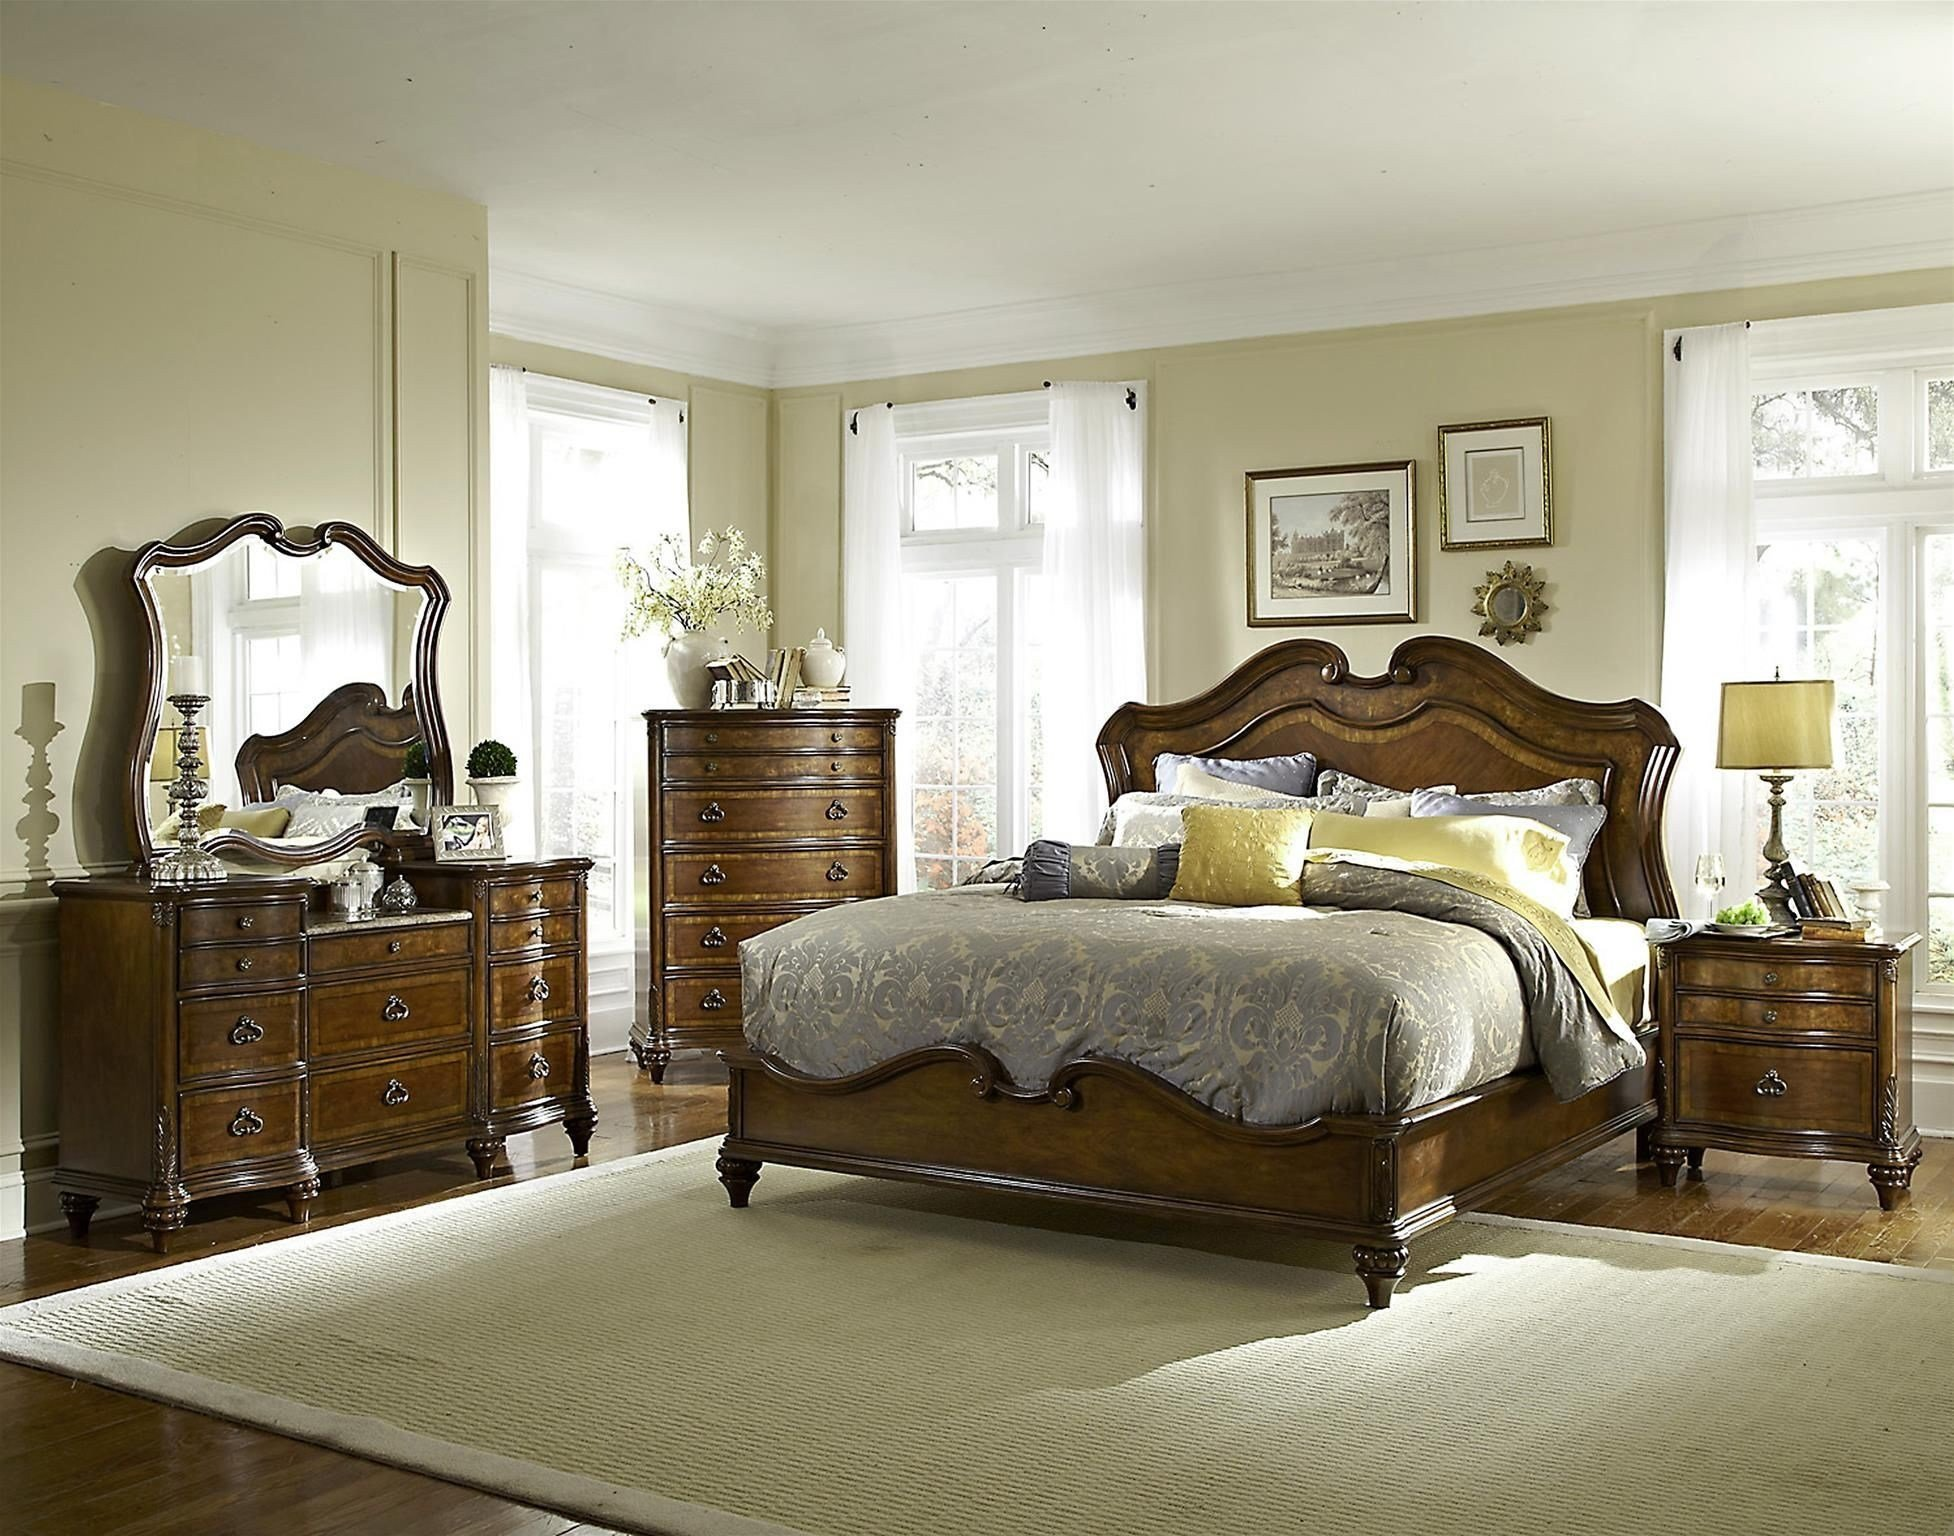 Best Marisol Brighton Cherry Panel Bedroom Set From Fairmont Designs S7057 Q Coleman Furniture With Pictures